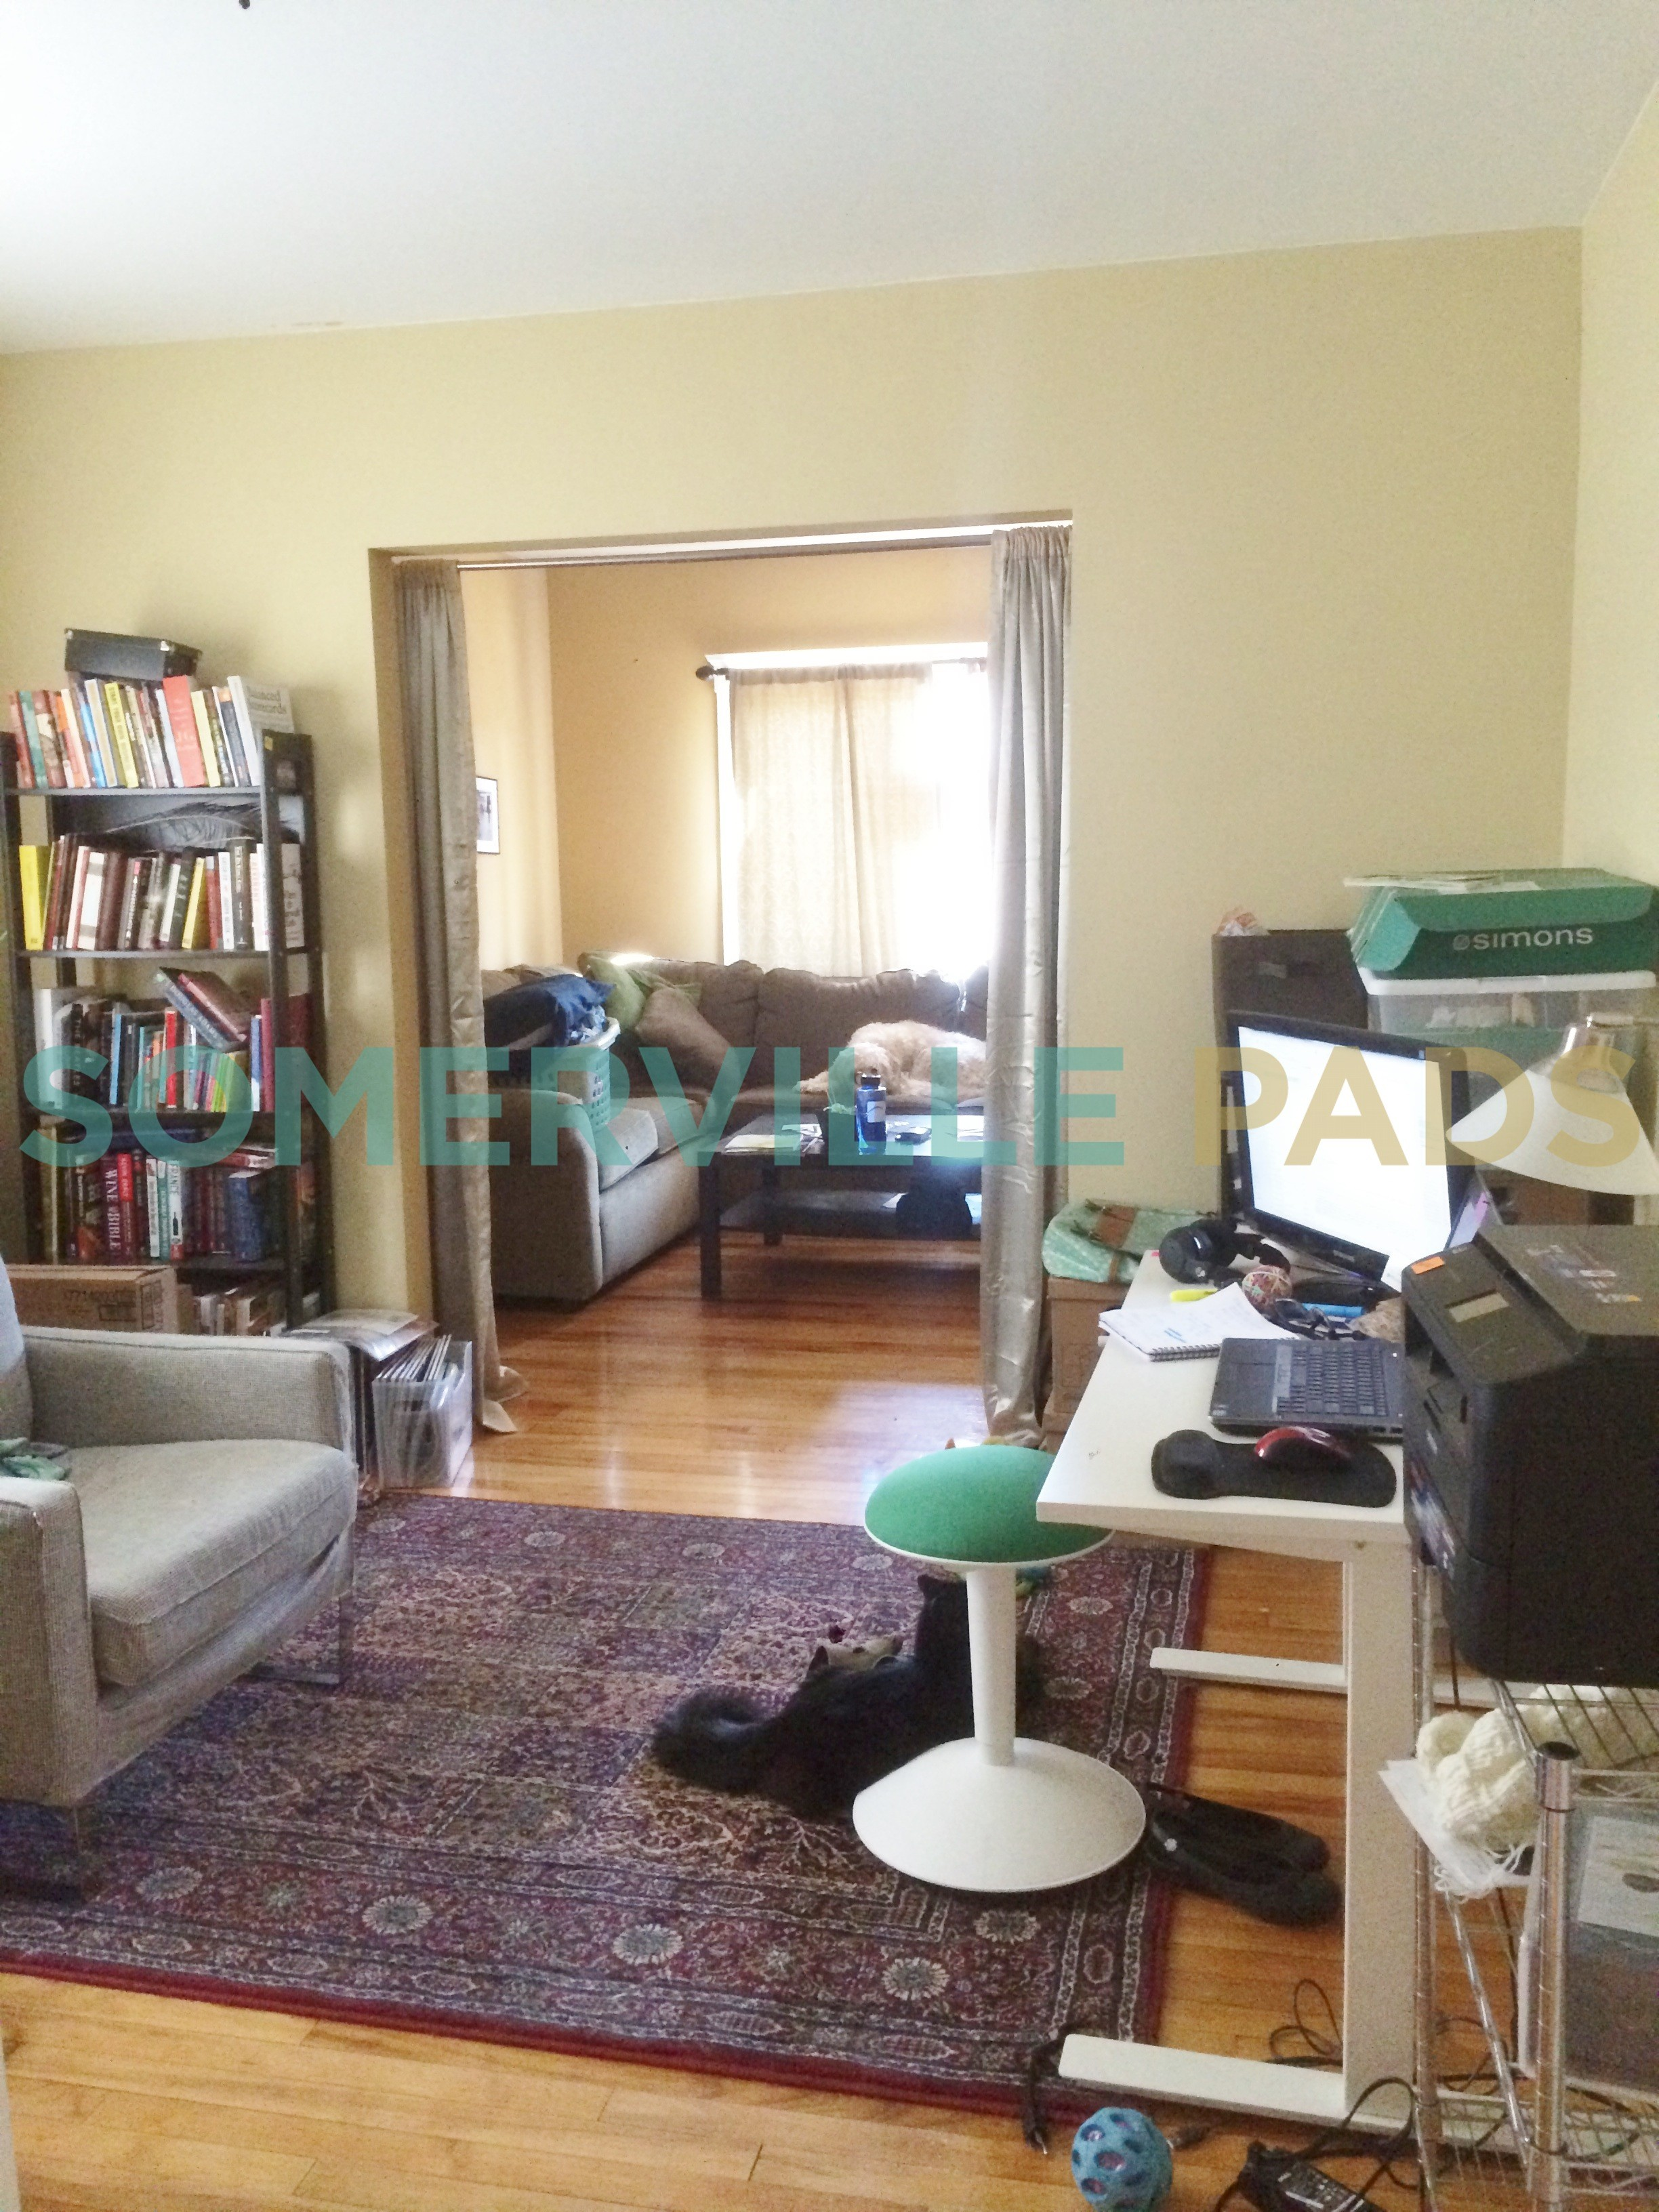 Fairfax St 1 Somerville Ma 02144 2 Bedroom Apartment For Rent Padmapper